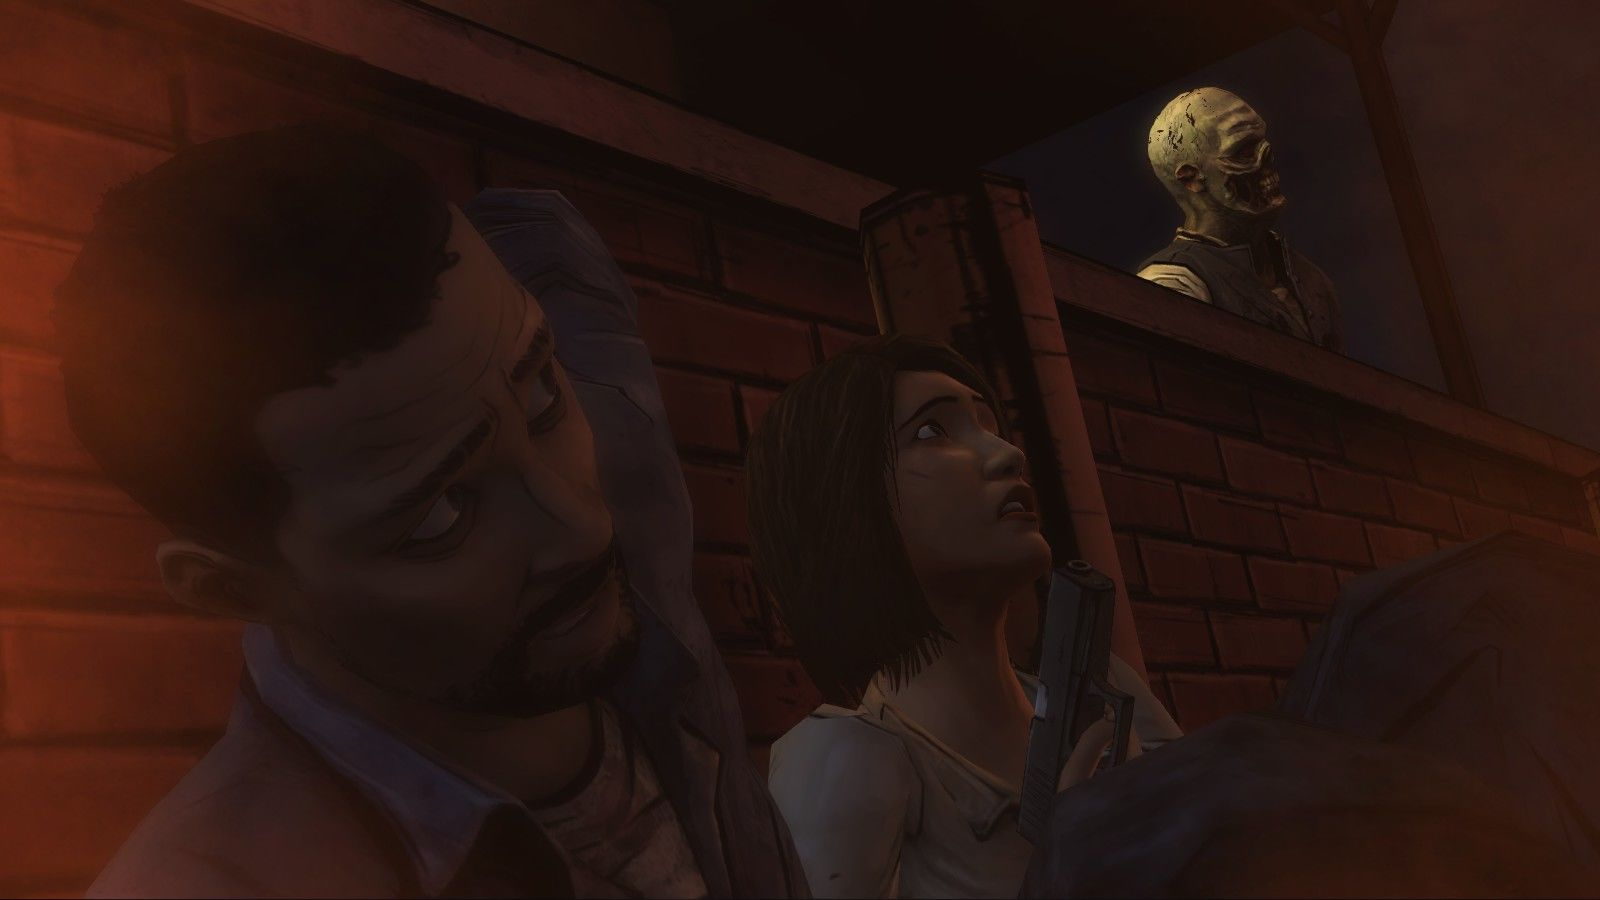 The Walking Dead Windows Episode 1 - That was close.